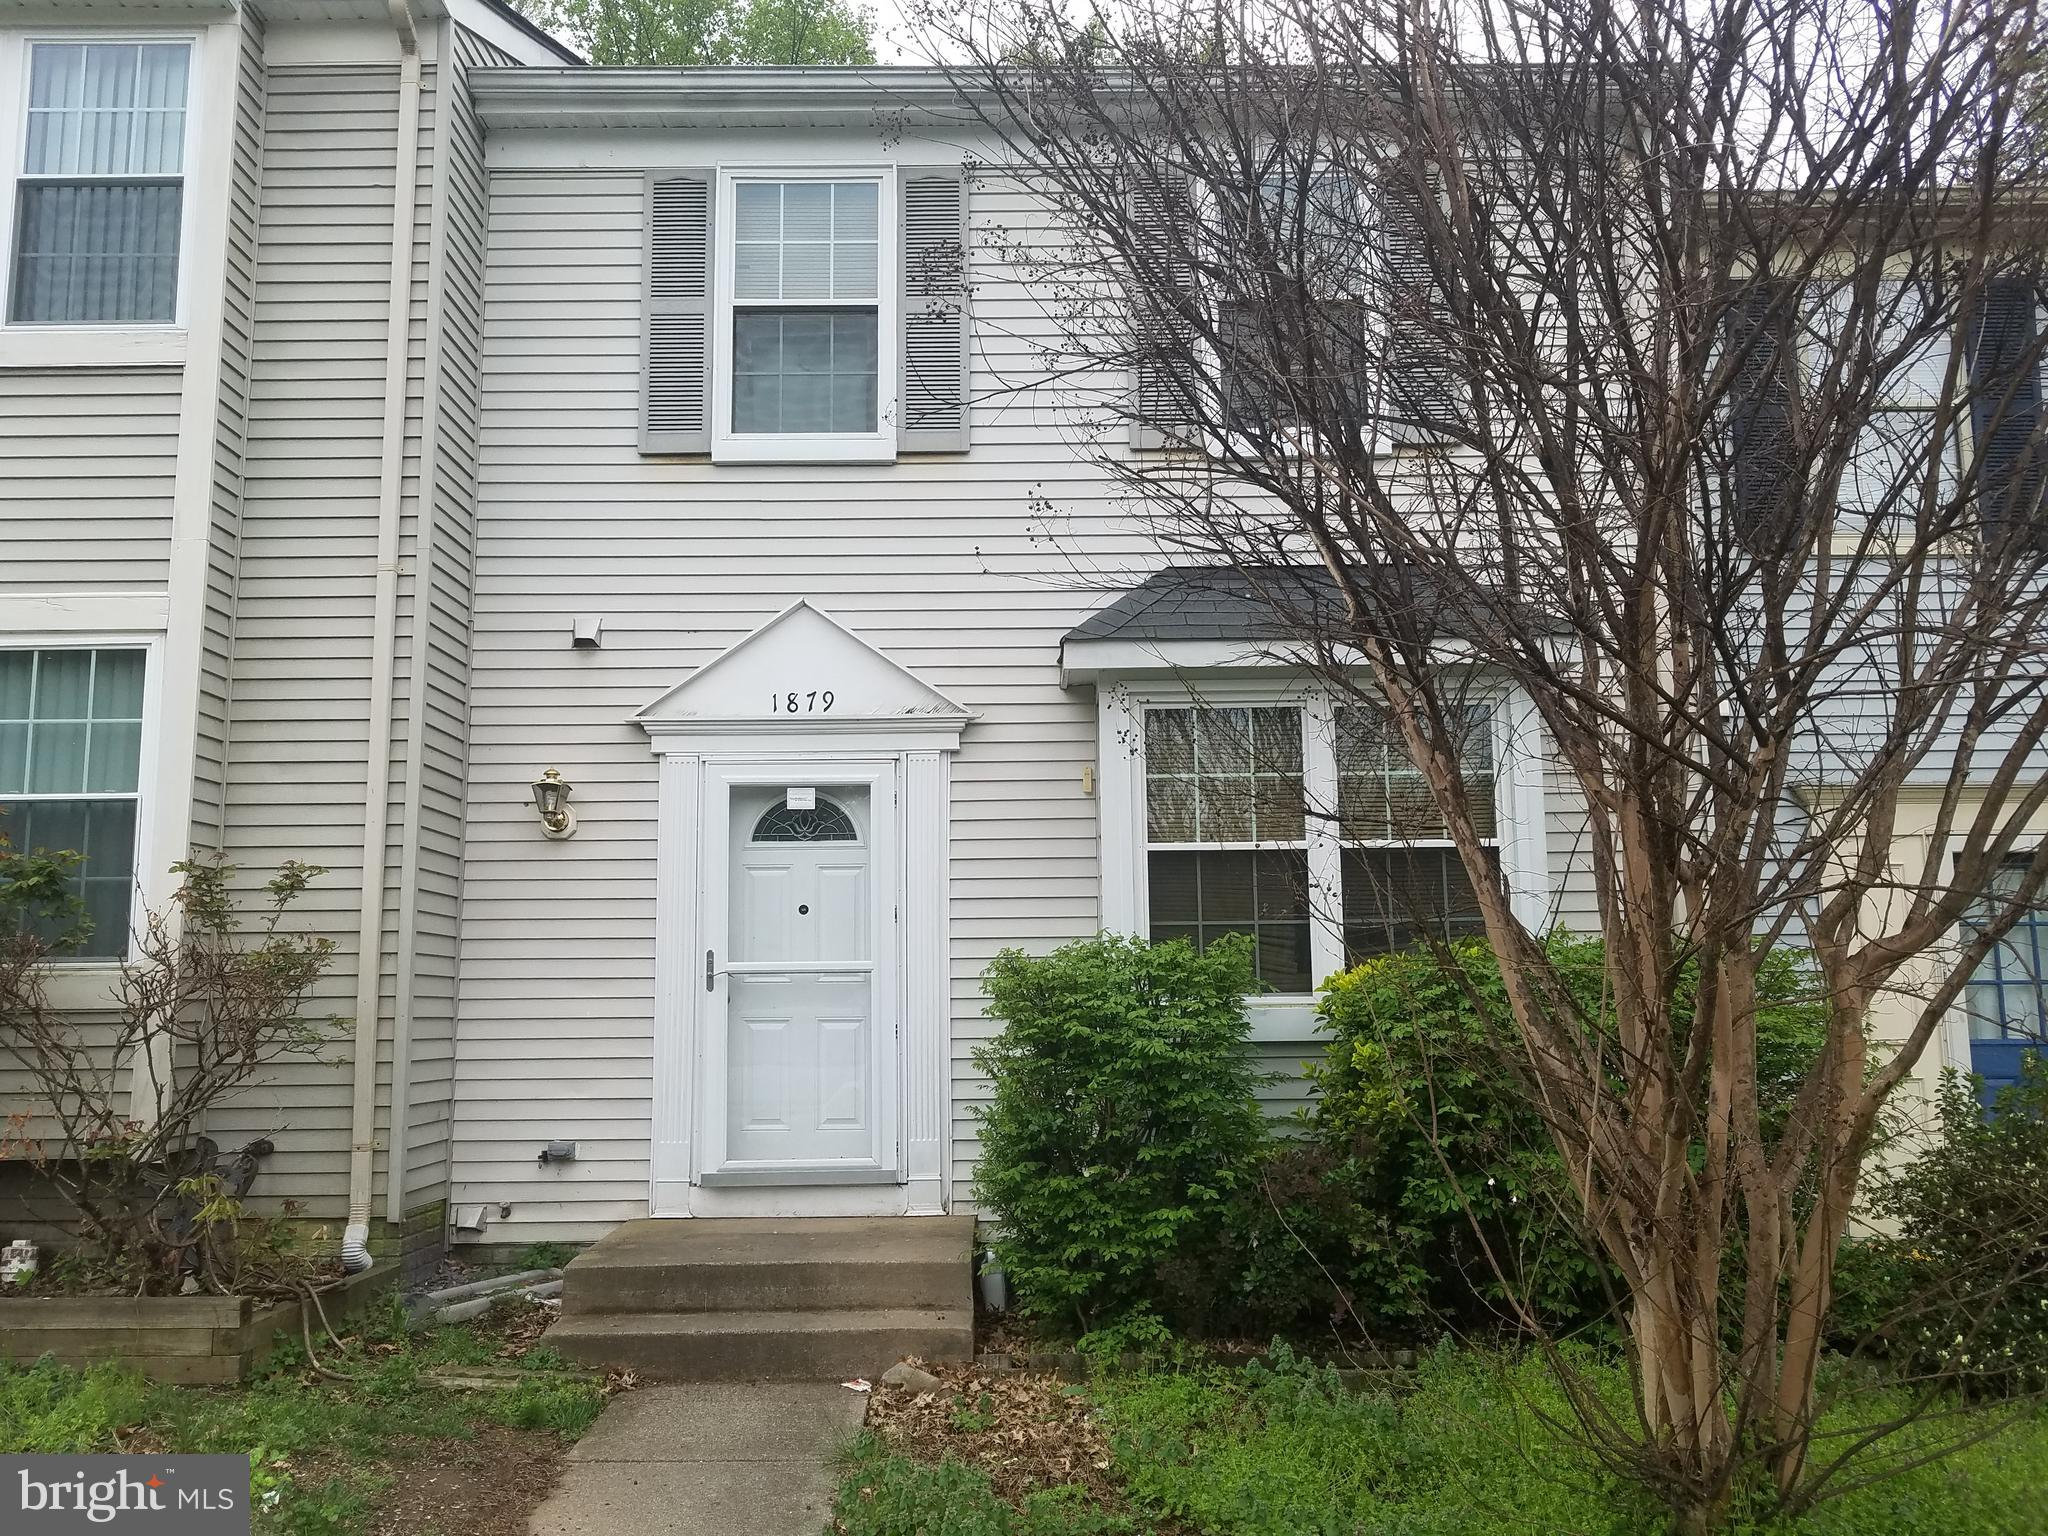 Spacious 3 level town home priced below market value in a great location close to shopping, Fort Belvoir, I95 , Route 1 and a manageable commute to DC! The main level features an open floor plan with hardwood floors throughout. From the kitchen, step out to the deck with good views of the wooded area. The upper level features 3 bedrooms and 2 full baths. The Lower level or basement features a rec room, fireplace, a rough in for a full bathroom, a spacious unfinished area, laundry area and a walk-out to the patio and fully fenced backyard. Windows and HVAC were replaced in 2012! The home needs some TLC so if you are looking to do a little bit of work or if you are looking for an investment opportunity, this is the one for you. Call or text for details.